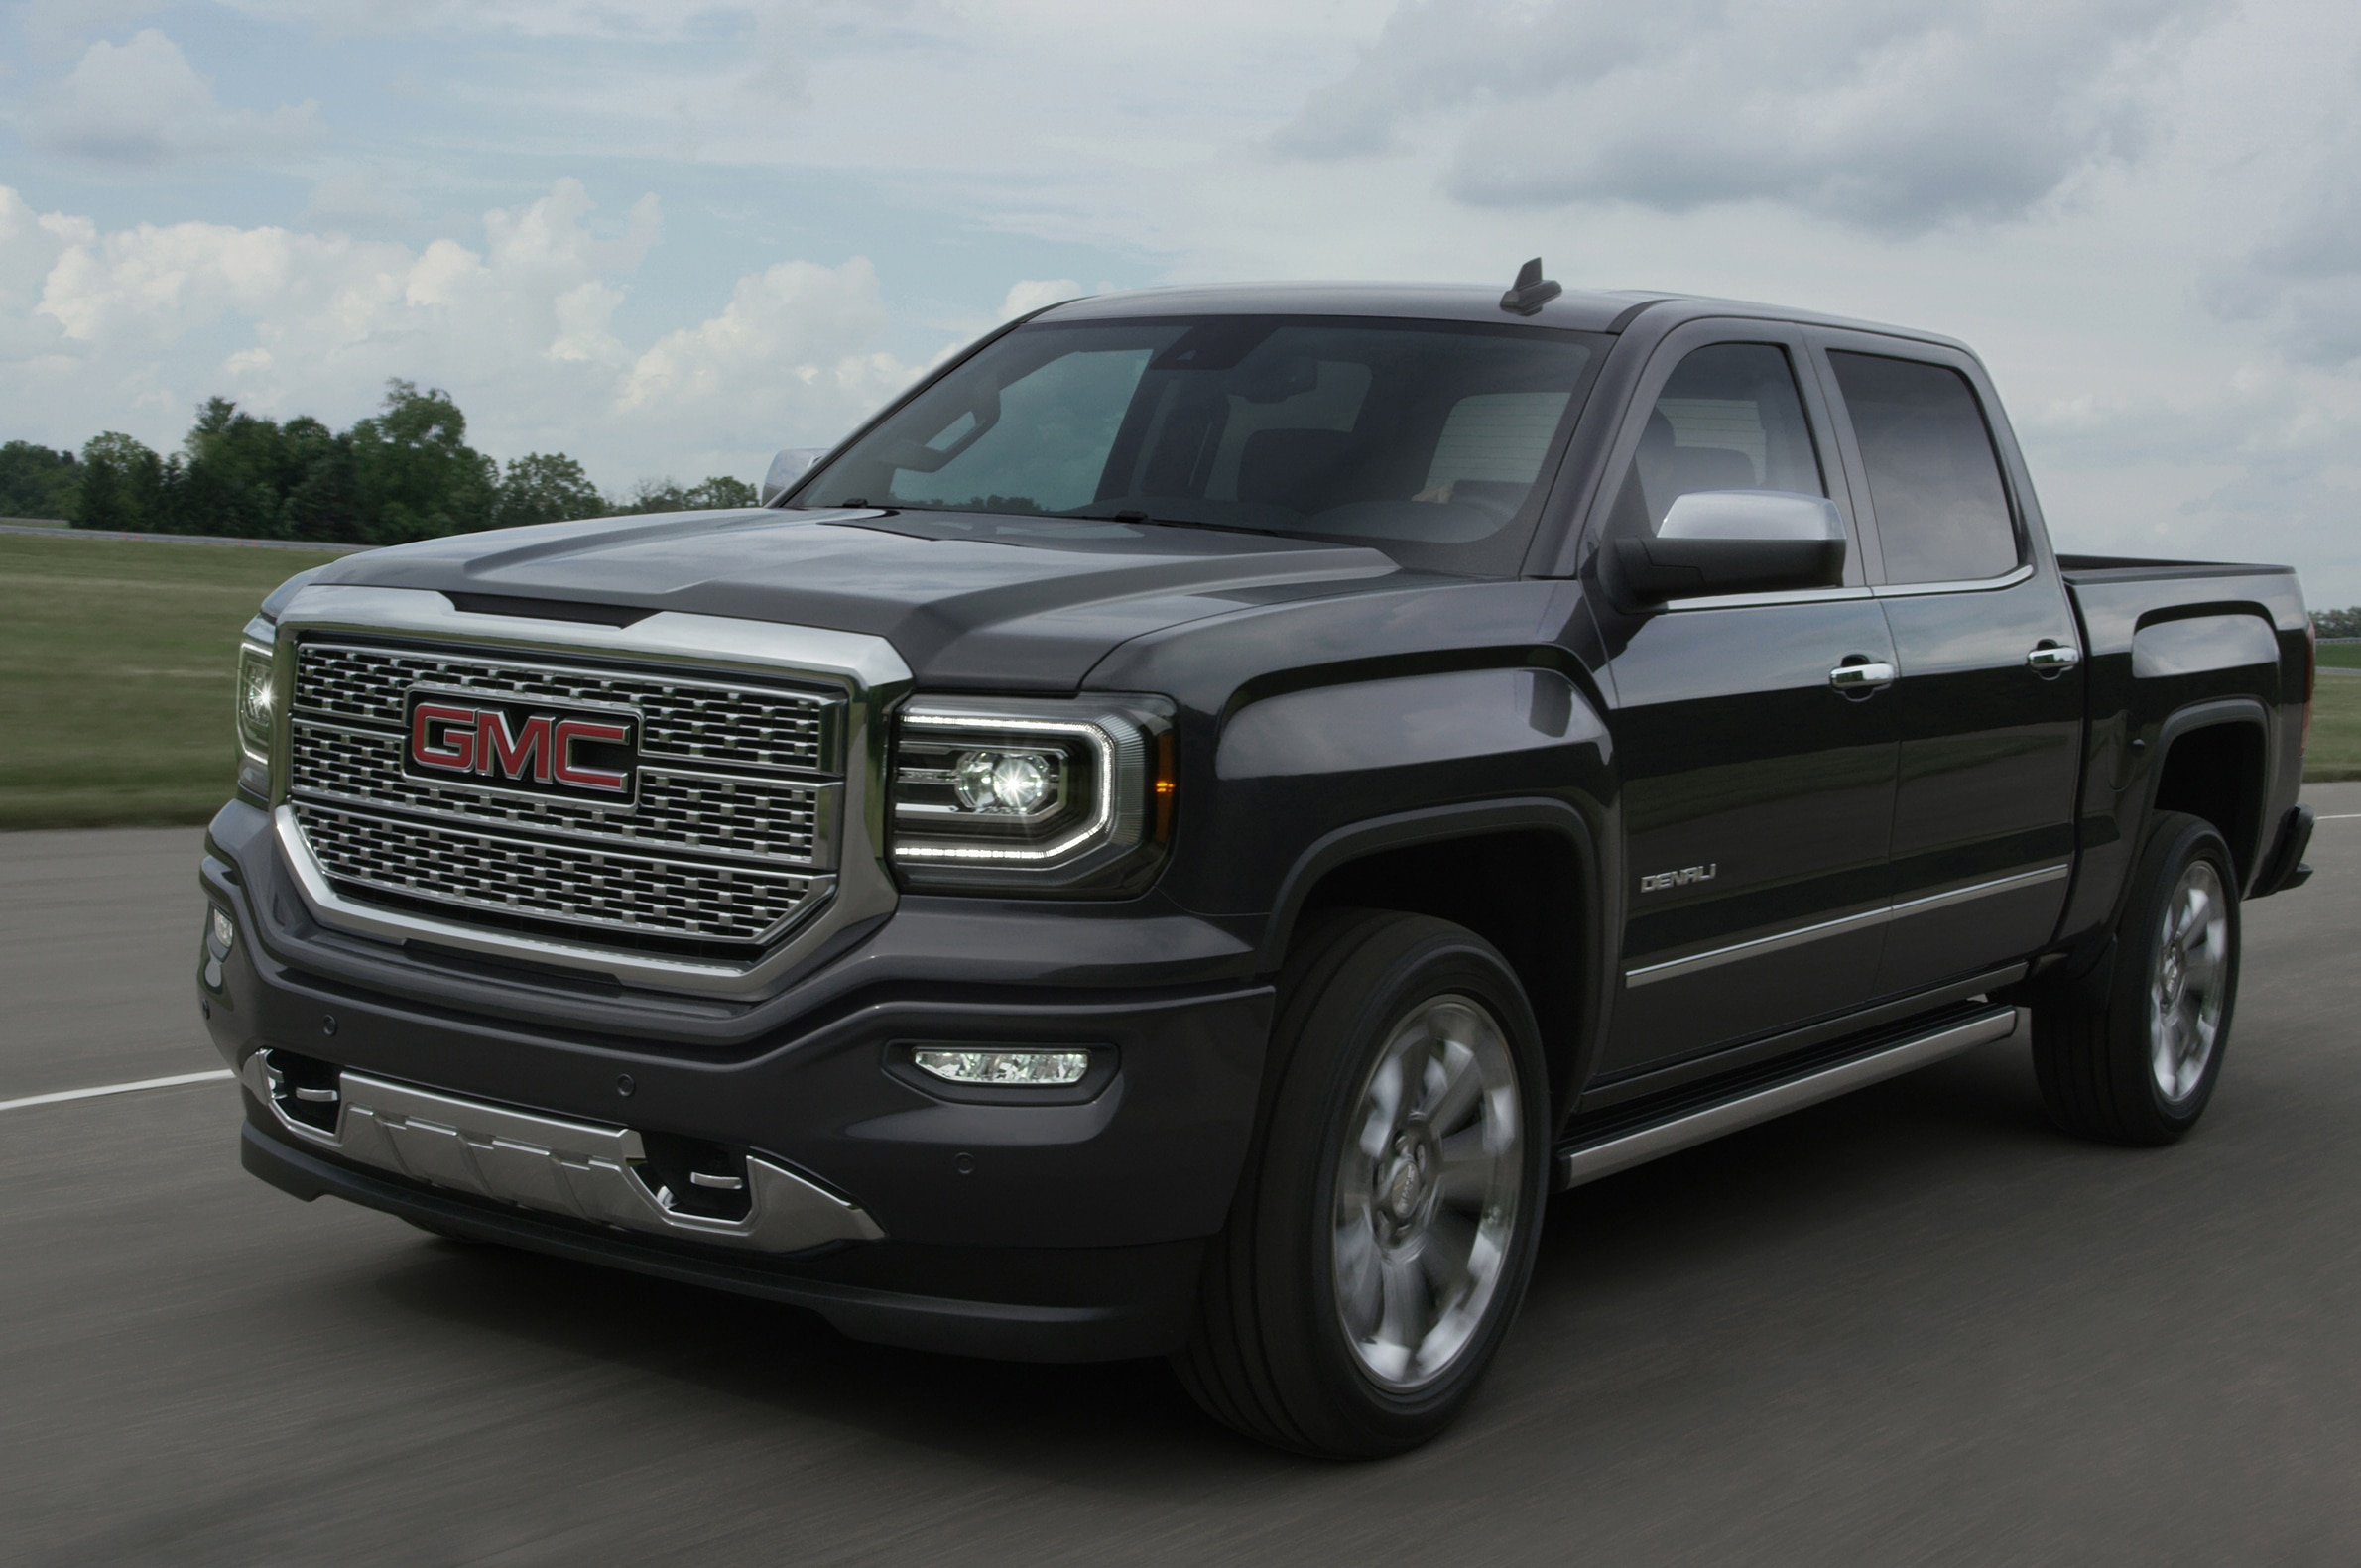 2016 Gmc Sierra Gets Refreshed Front Fascia Led Headlights